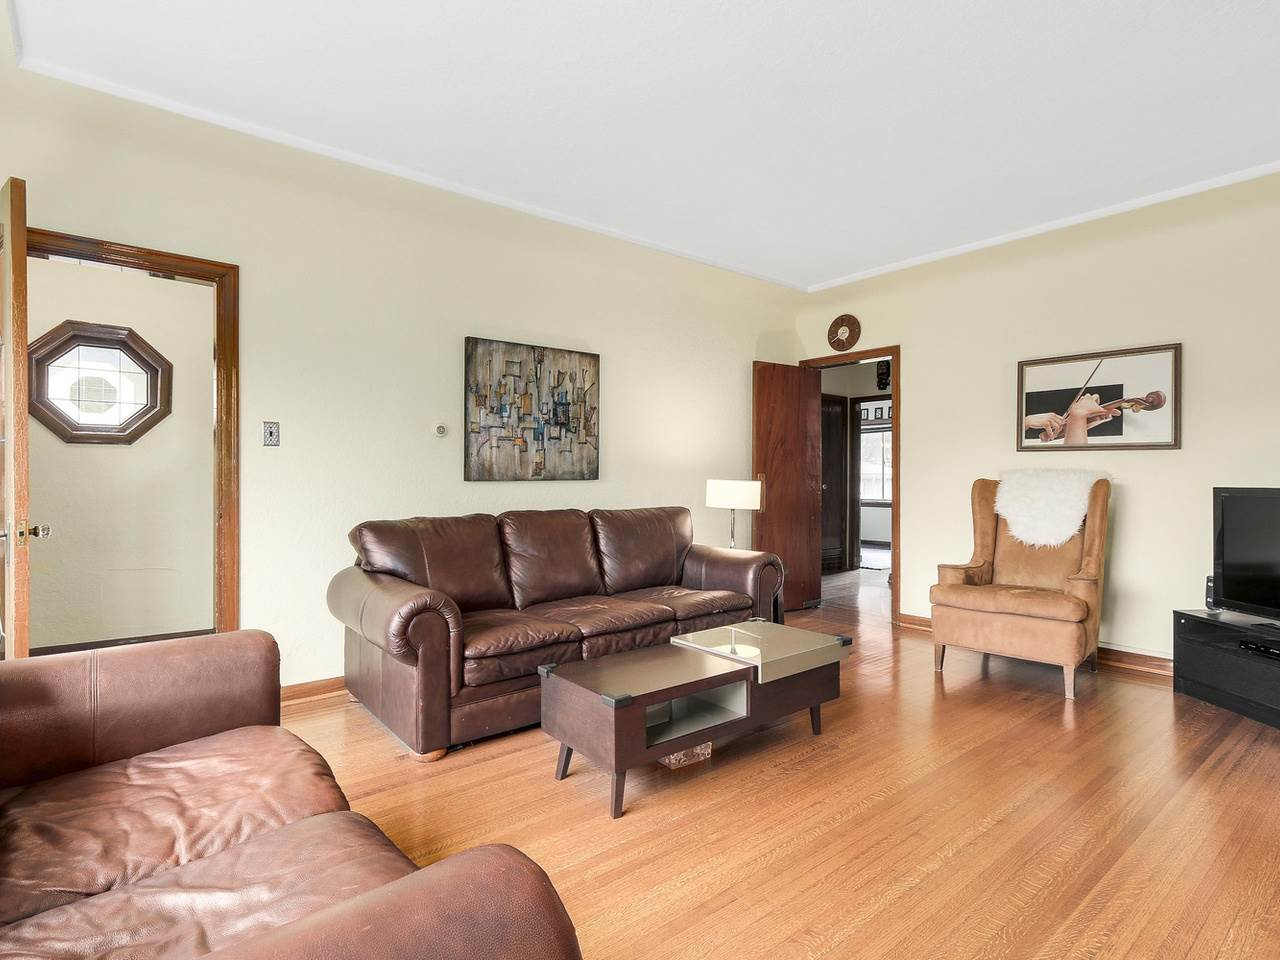 Photo 4: 3114 TURNER Street in Vancouver: Renfrew VE House for sale (Vancouver East)  : MLS® # R2147724